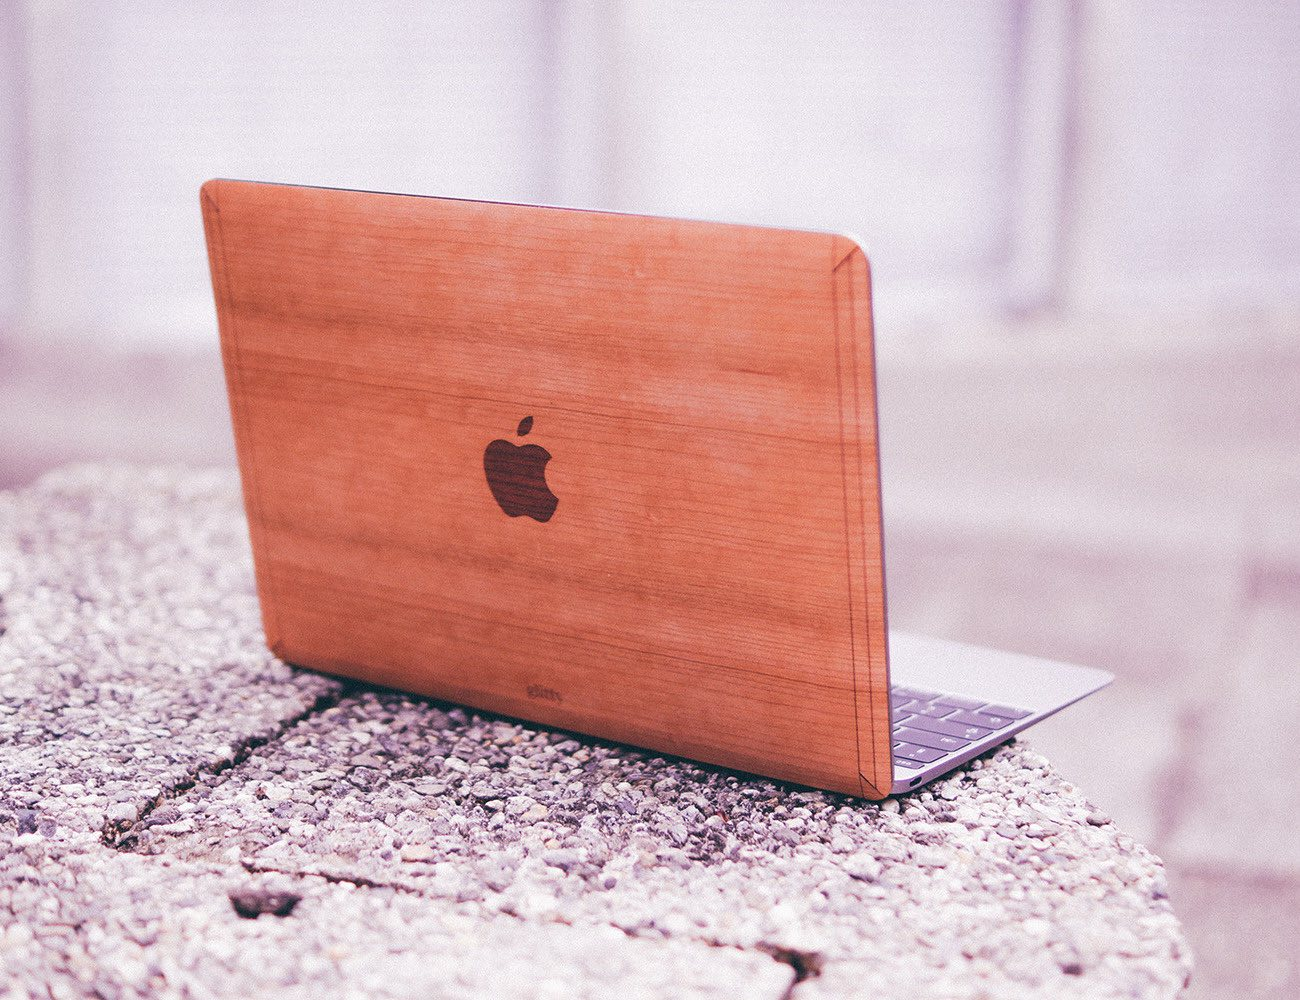 "Cherry for Macbook 12"" – Handmade Cherry Wood Cover Made in USA"